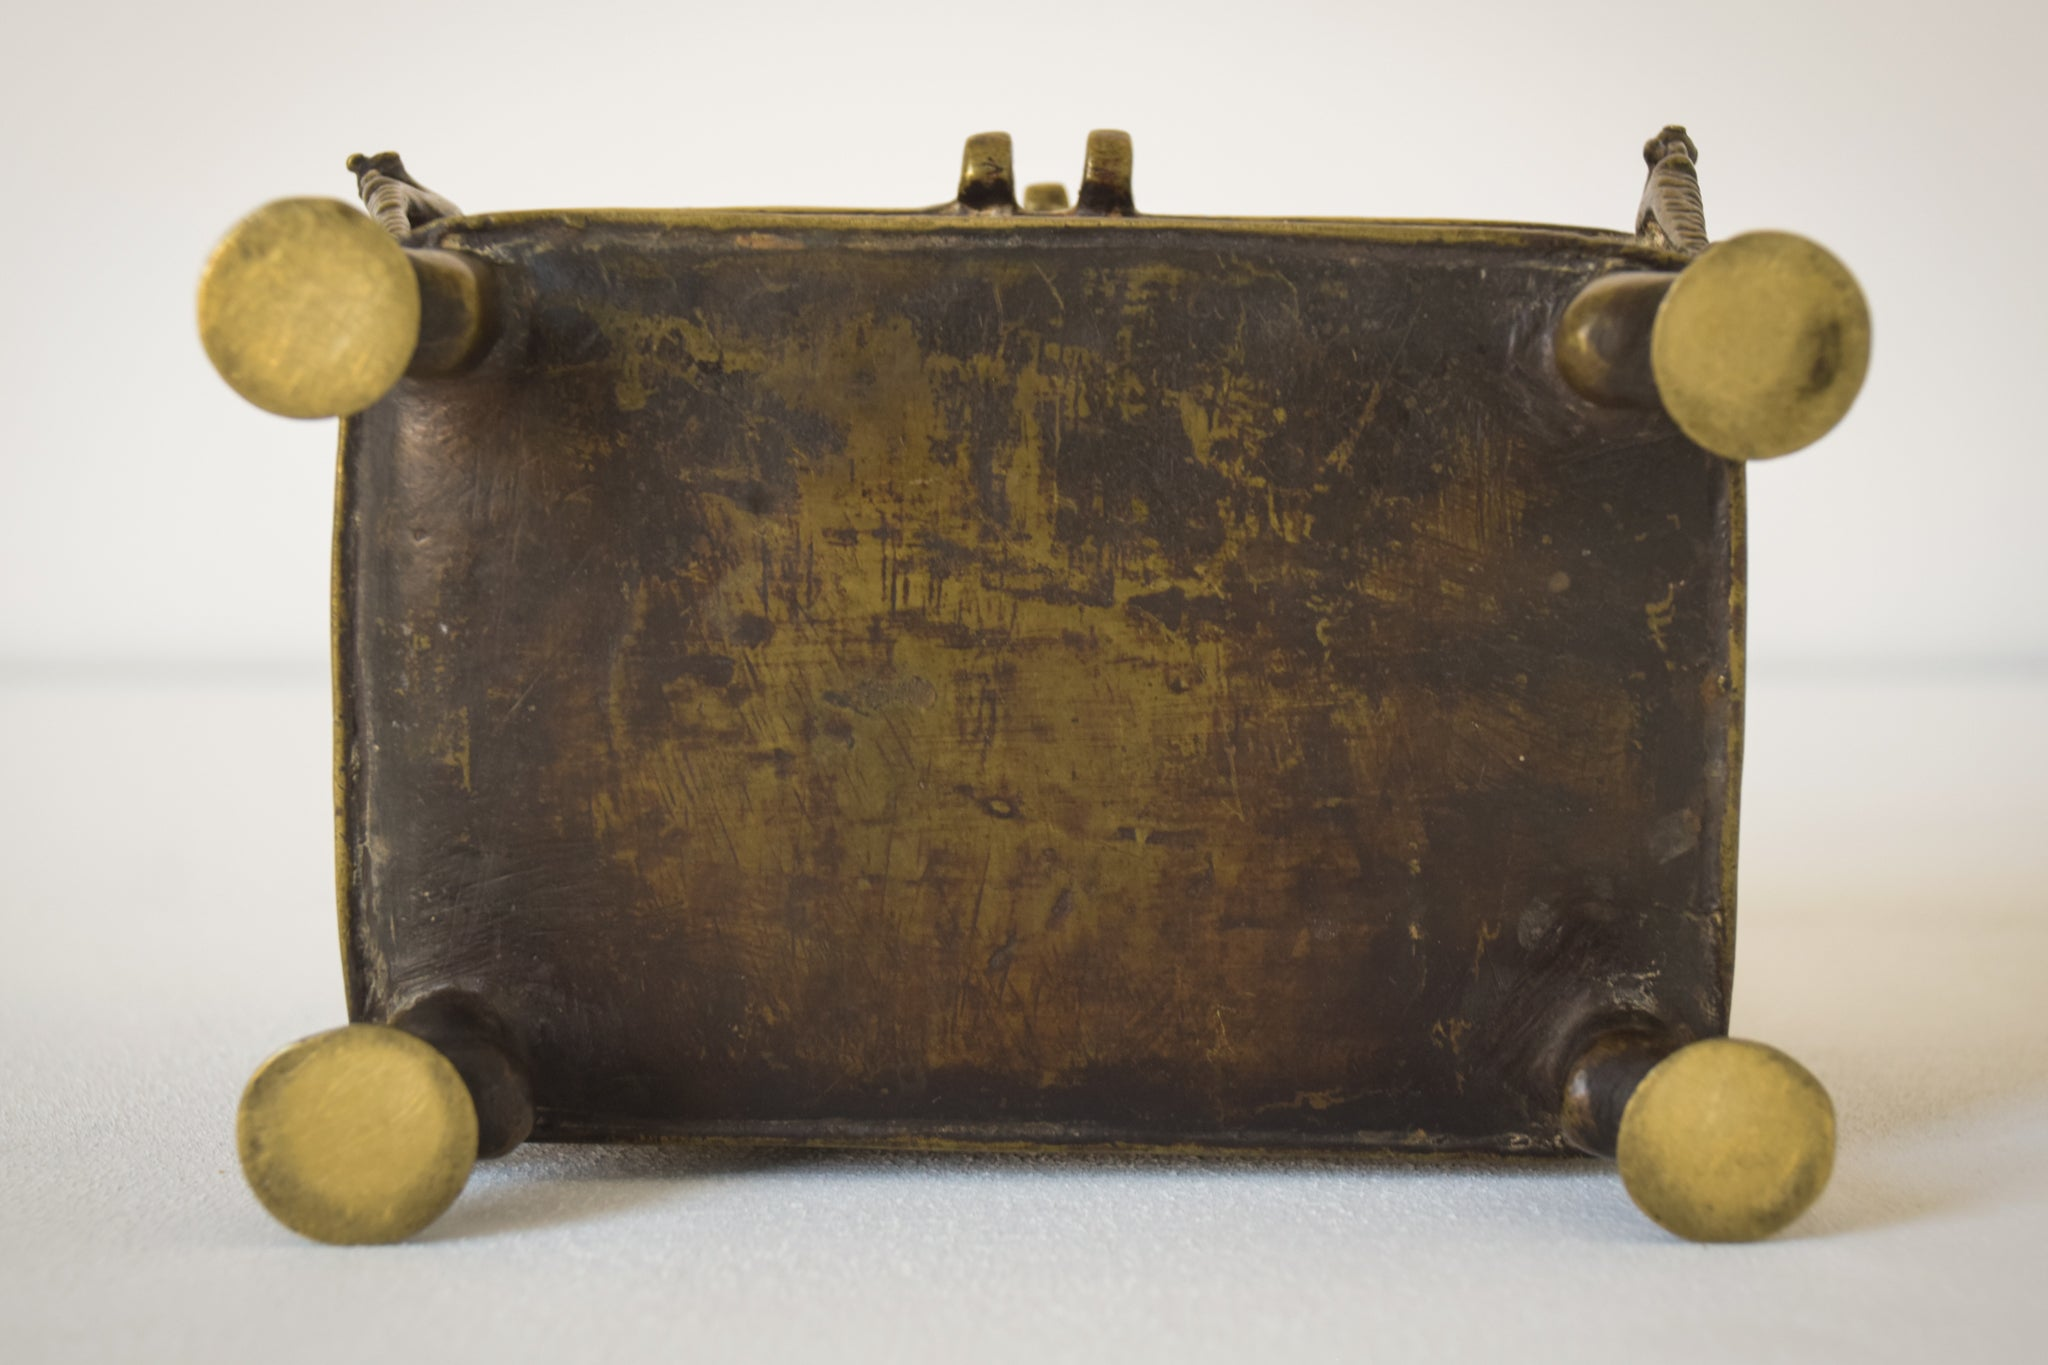 Brass Casket from Orissa